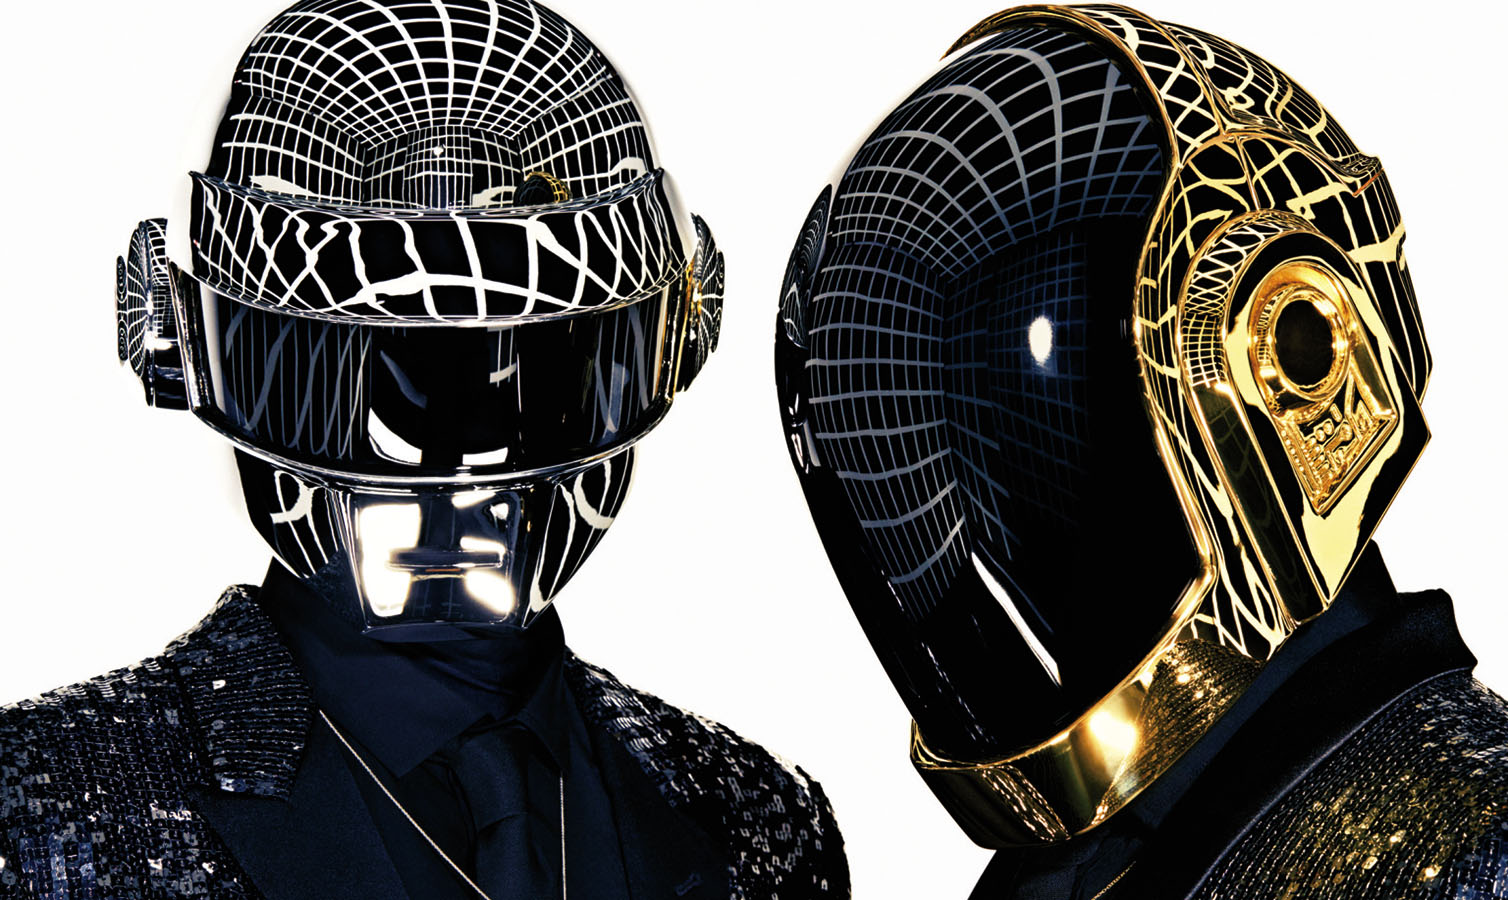 daft-punk-computerized